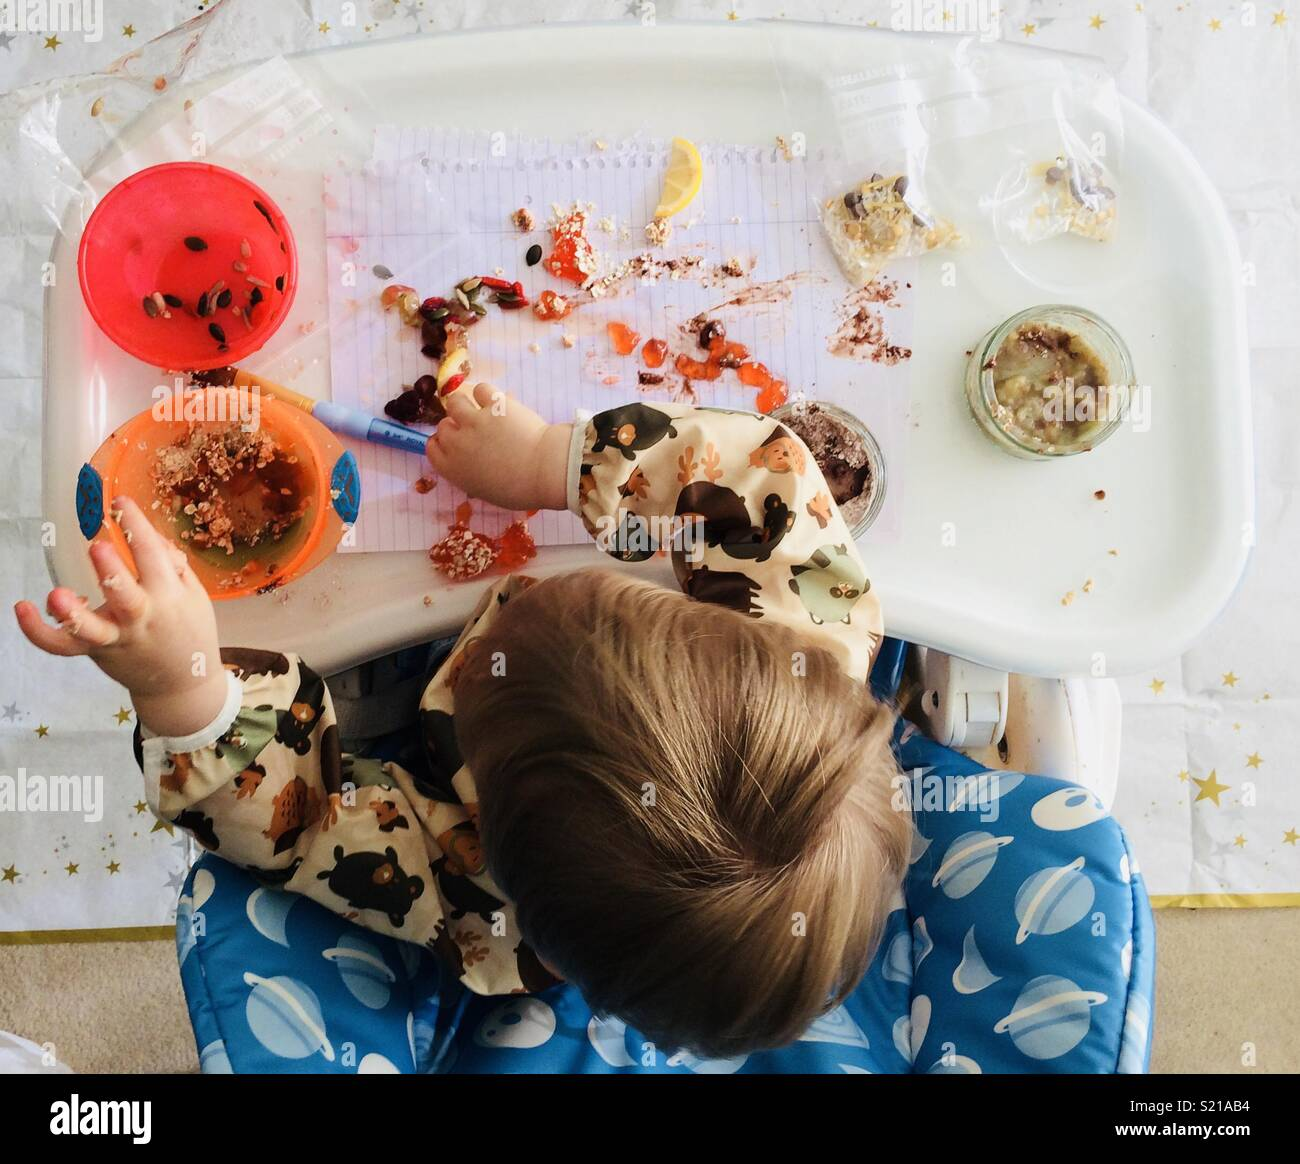 Messy play - Stock Image